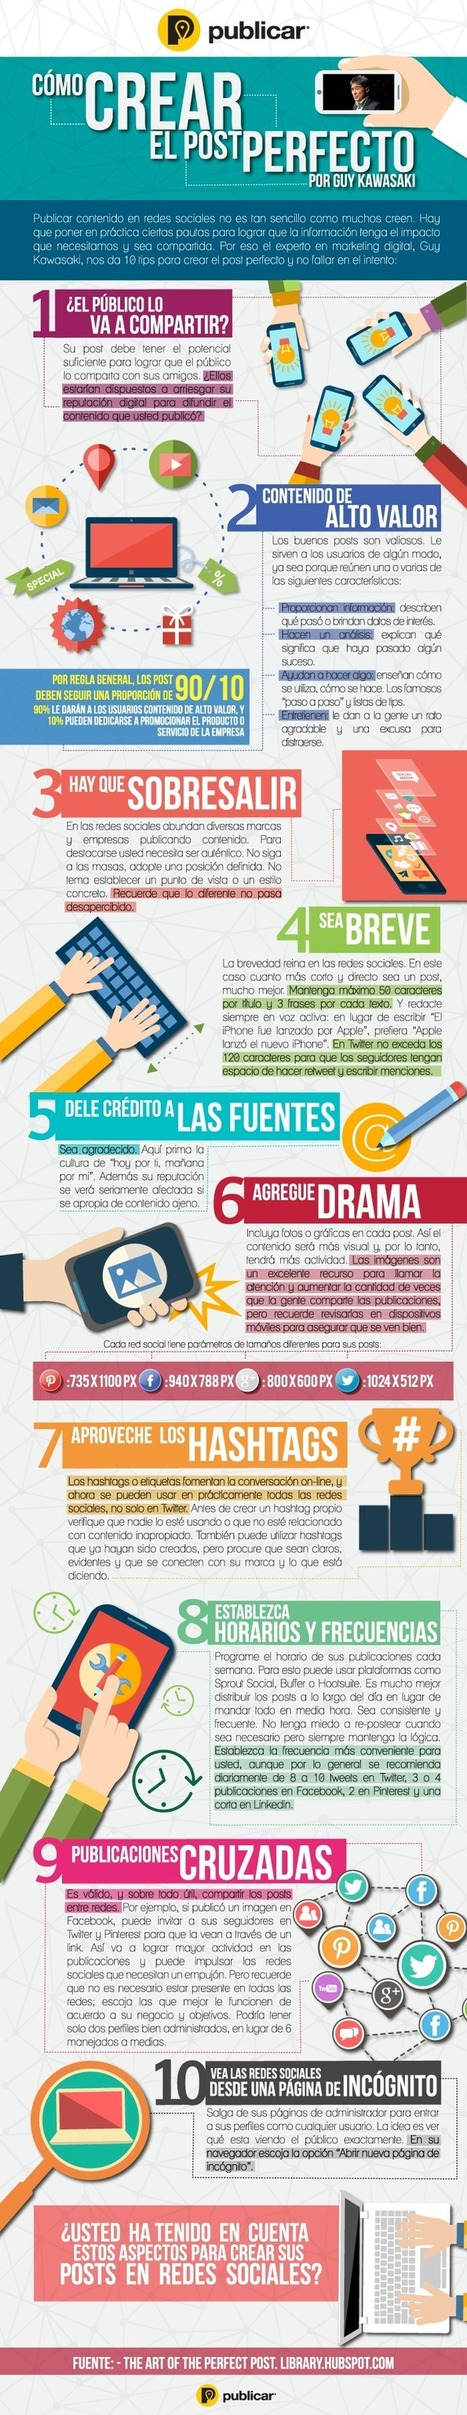 Cómo crear el post perfecto según Guy Kawasaki #infografia #infographic #socialmedia | Seo, Social Media Marketing | Scoop.it